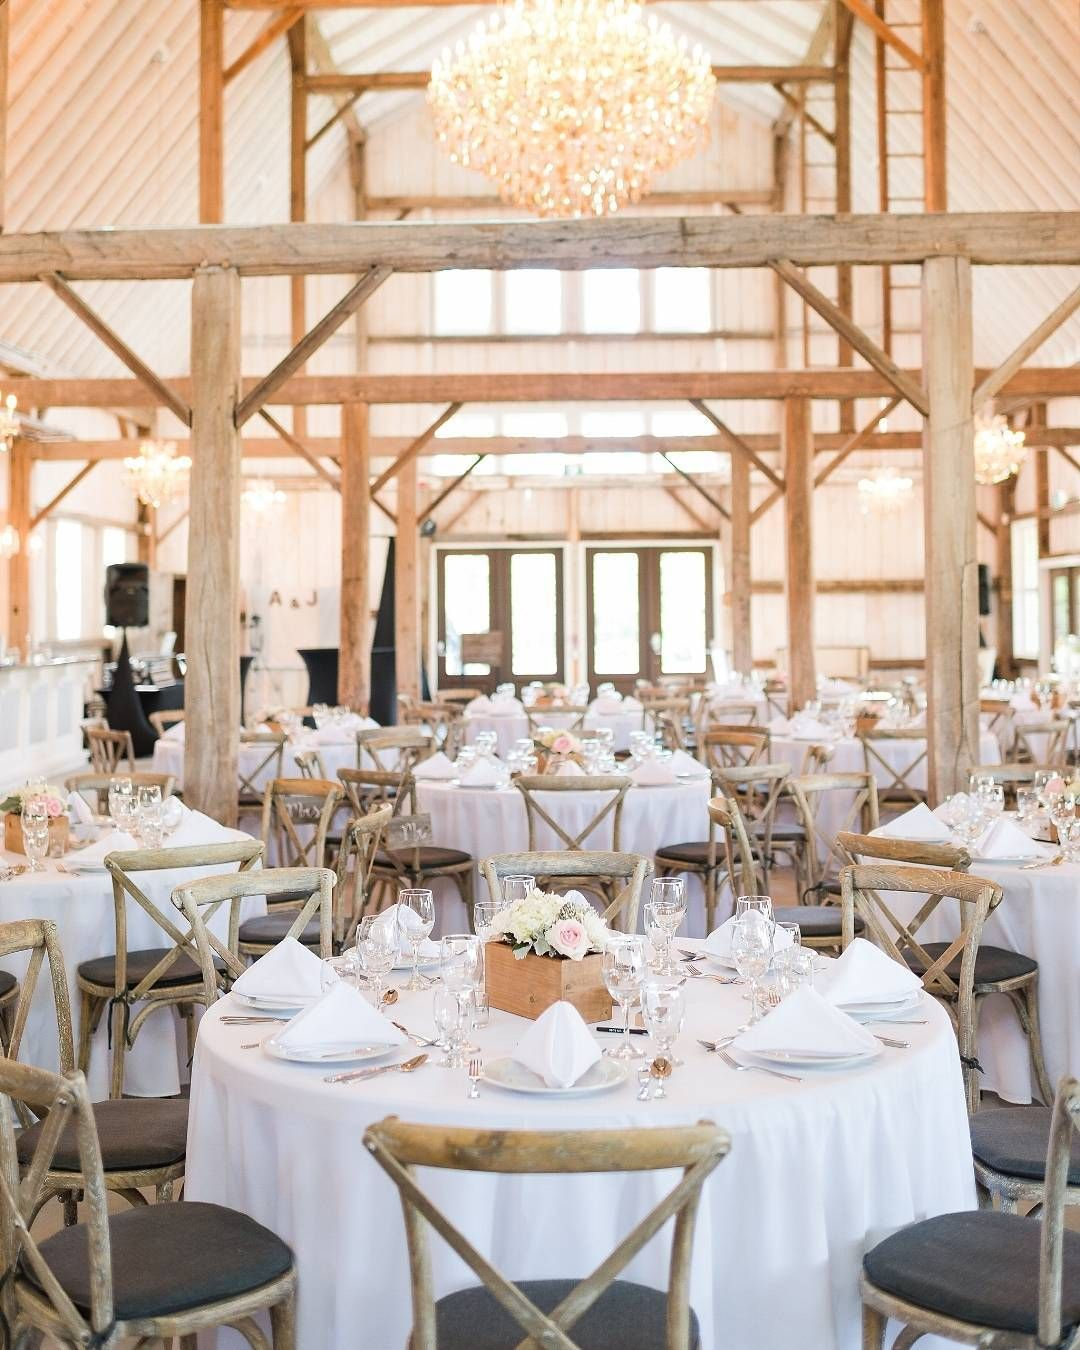 Farm wedding decor ideas  Because as if Stonefields wasnut already stunning to begin with